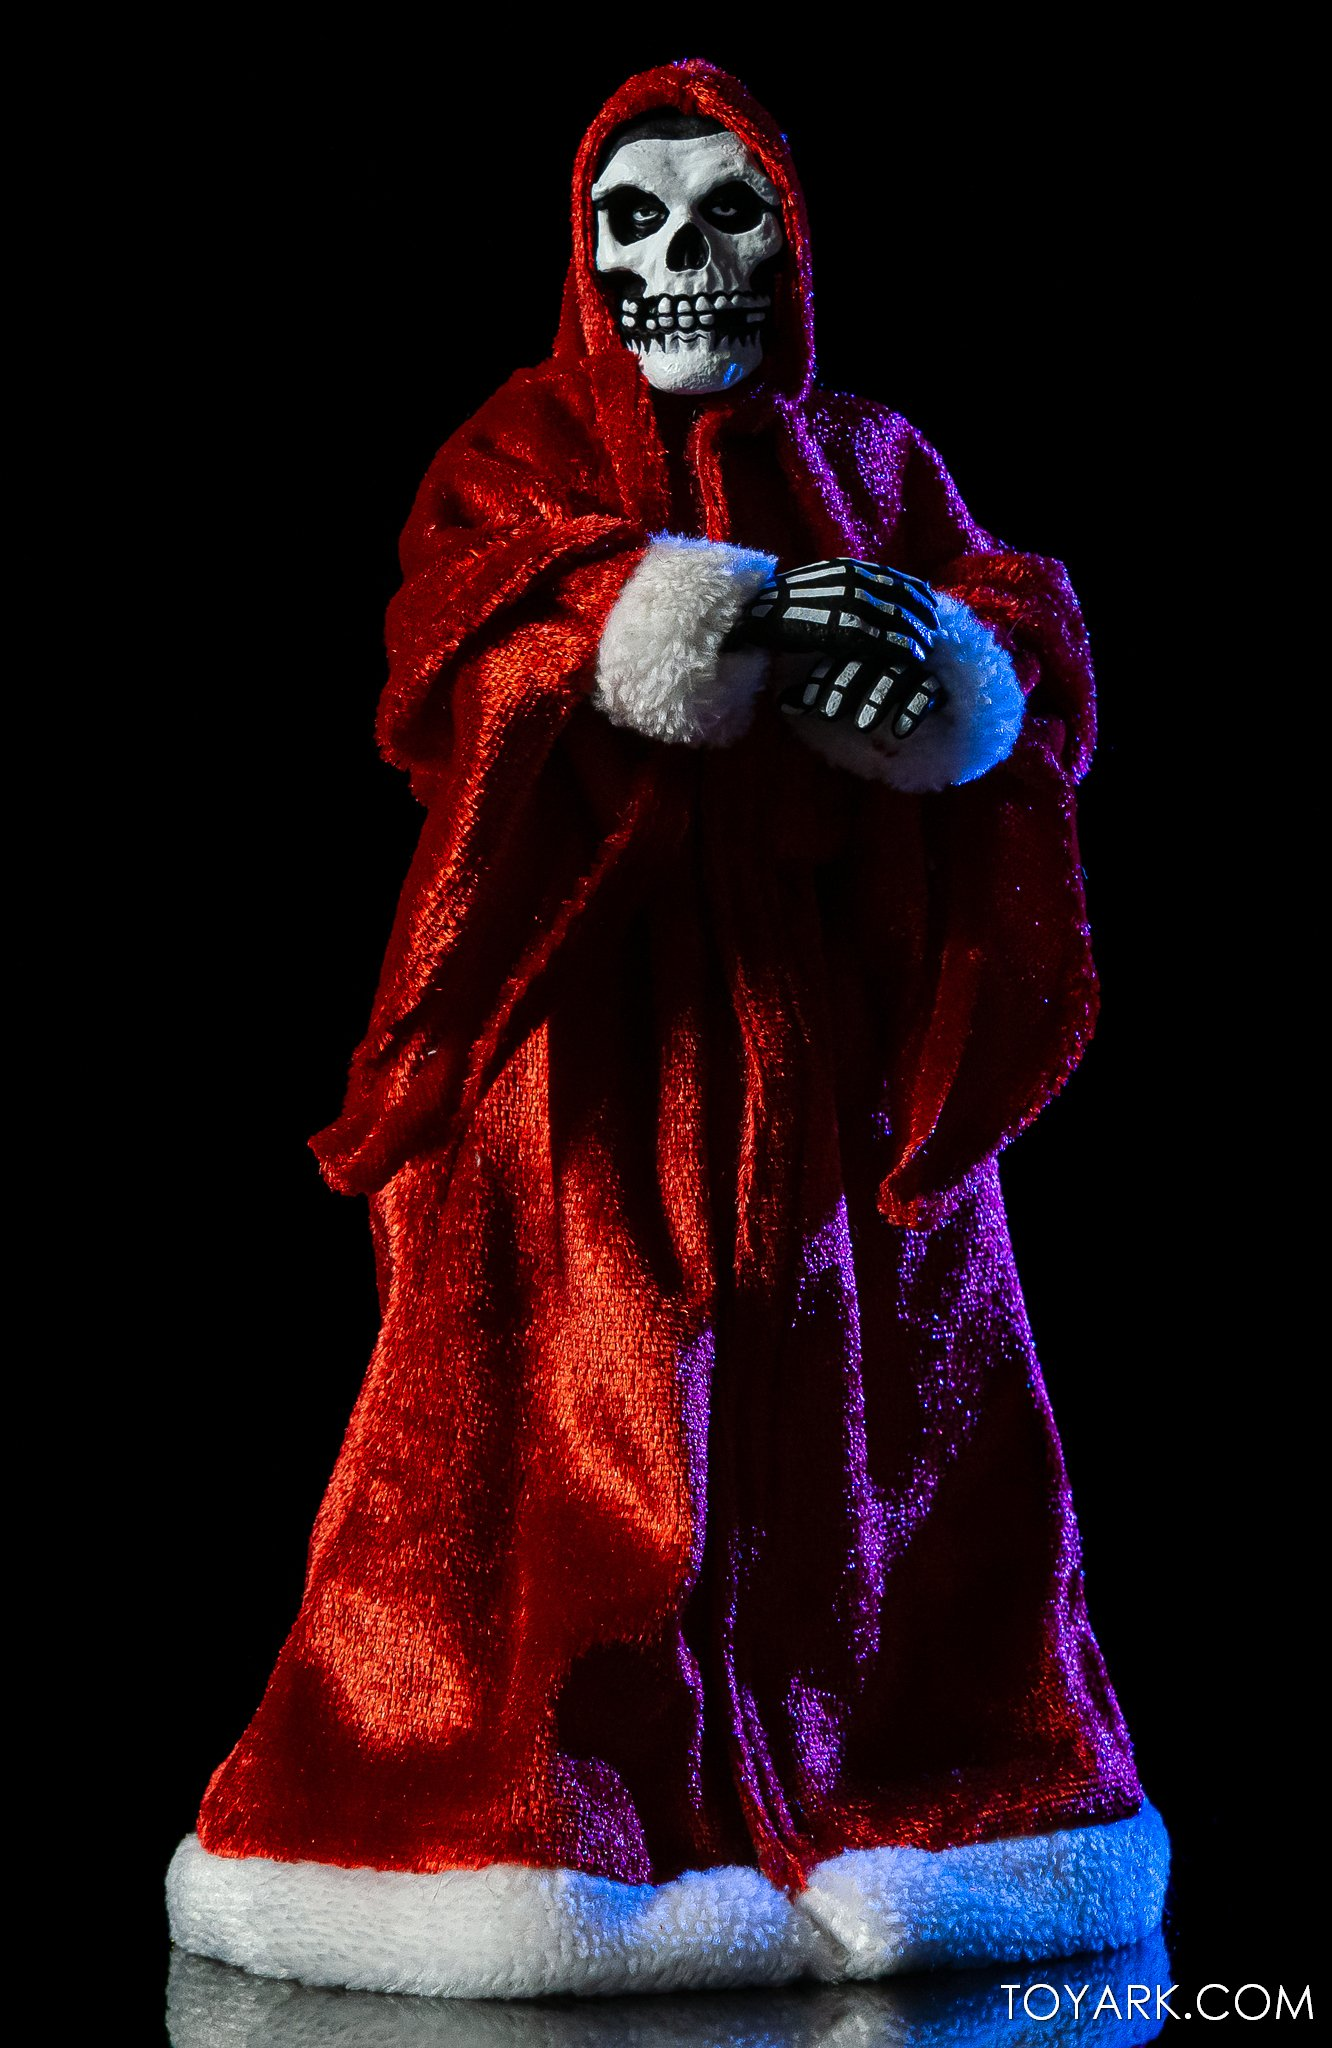 https://news.toyark.com/wp-content/uploads/sites/4/2020/12/NECA-Holiday-Fiend-Figure-024.jpg